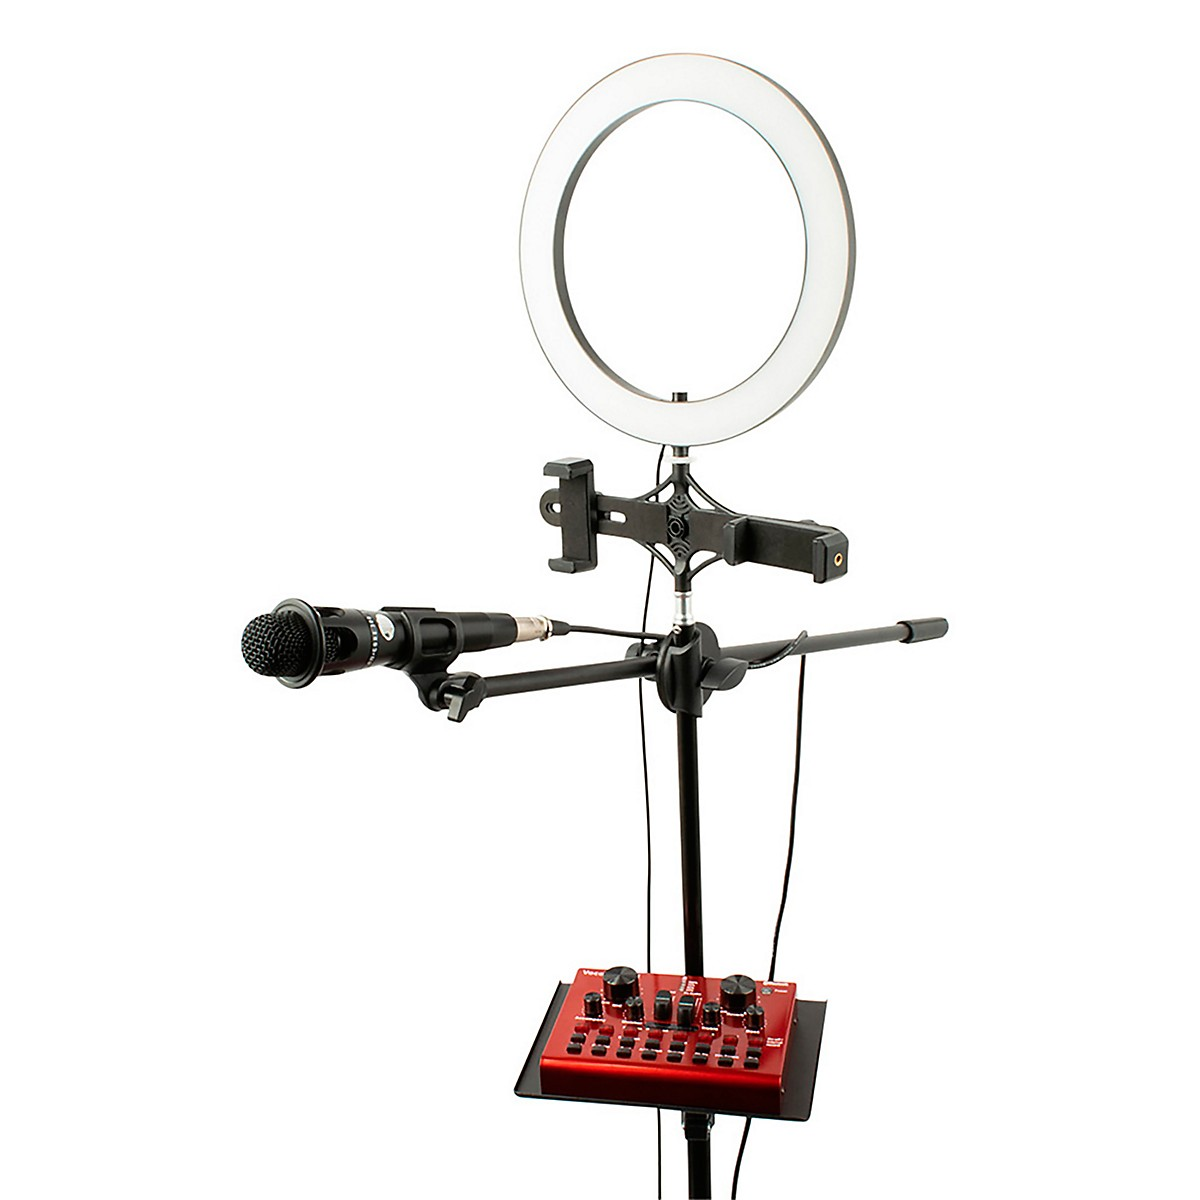 Vocopro Streamer-Live, USB audio interface, condenser microphone, boom stand, and LED ring light package for content creators